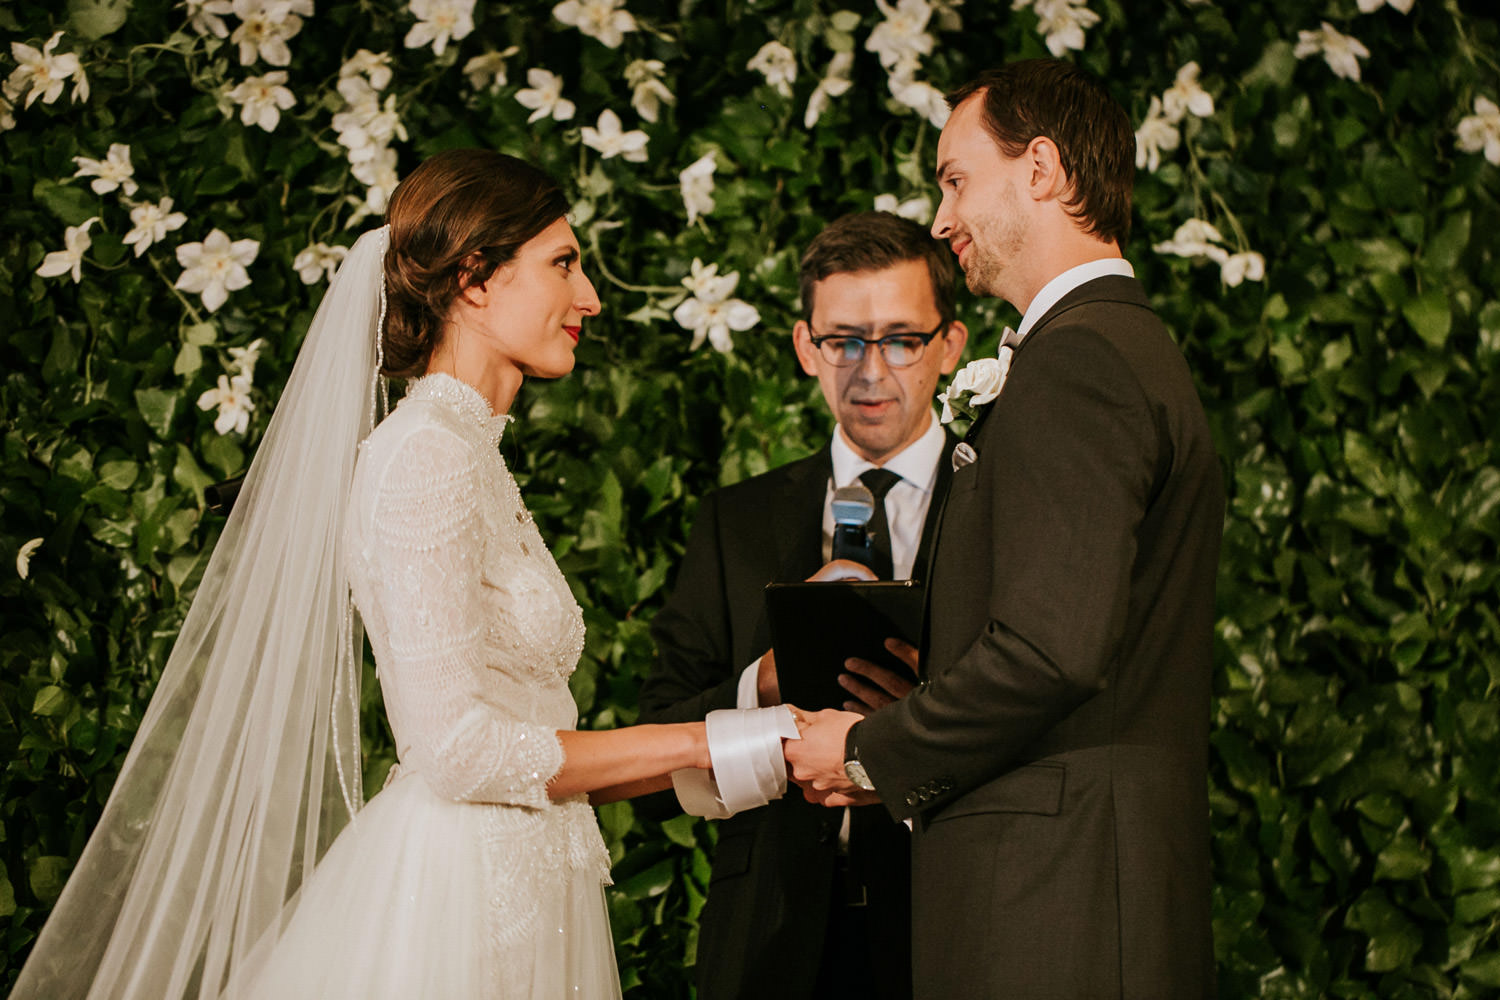 Bride and groom exchange rings during the ceremony at hotel gray in Chicago